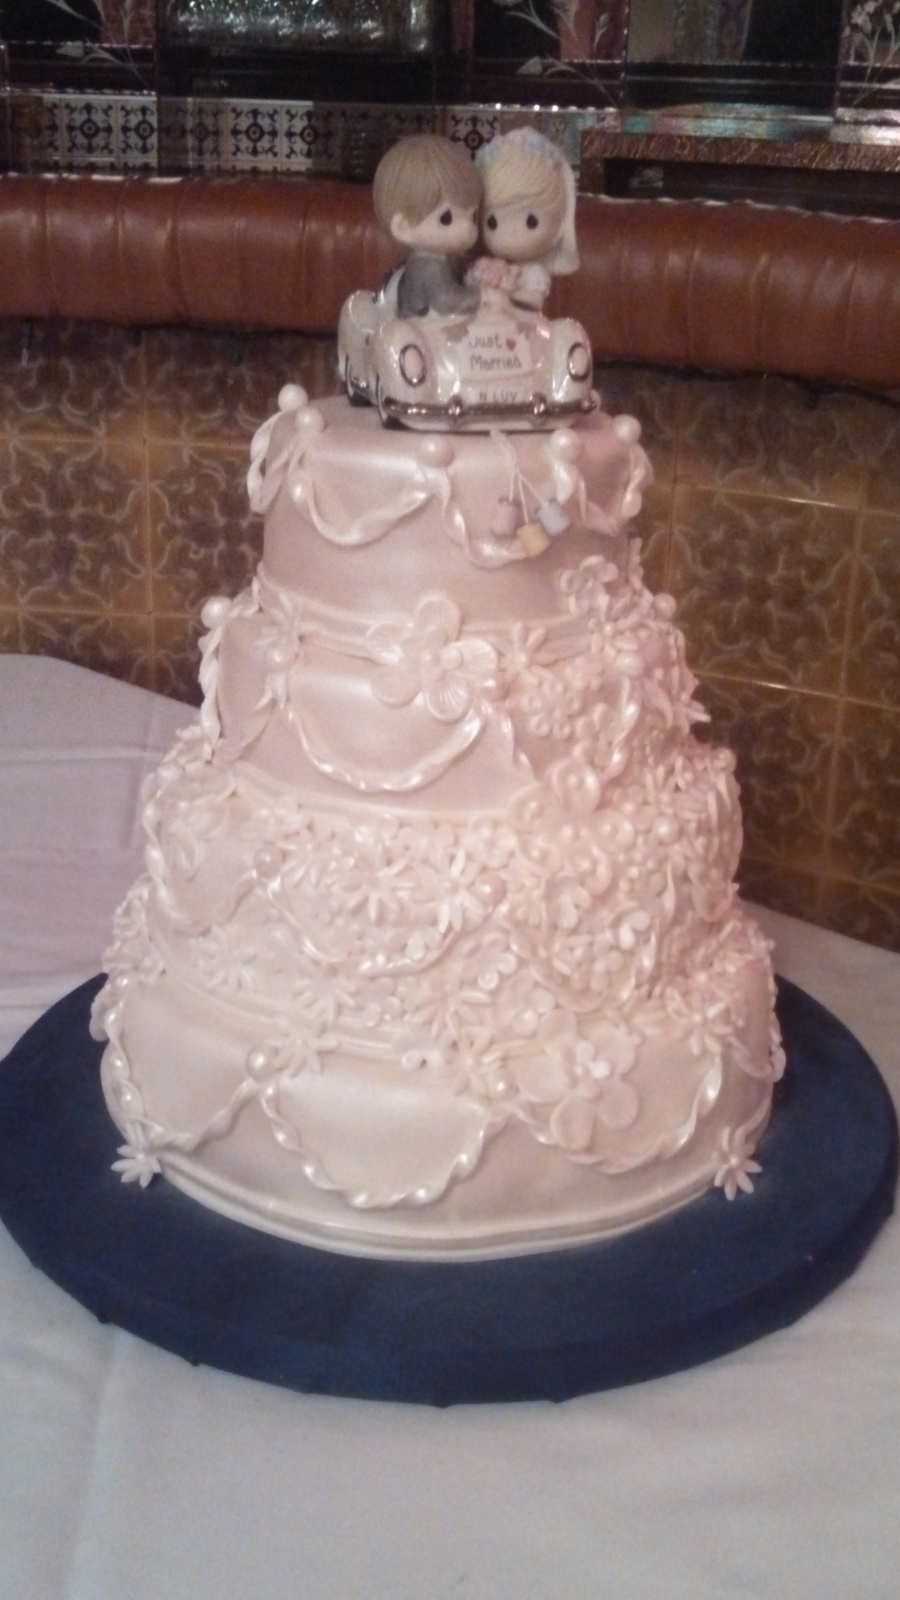 4 Tier Pearl White Wedding Cake With Precious Moments Toopper on Cake Central